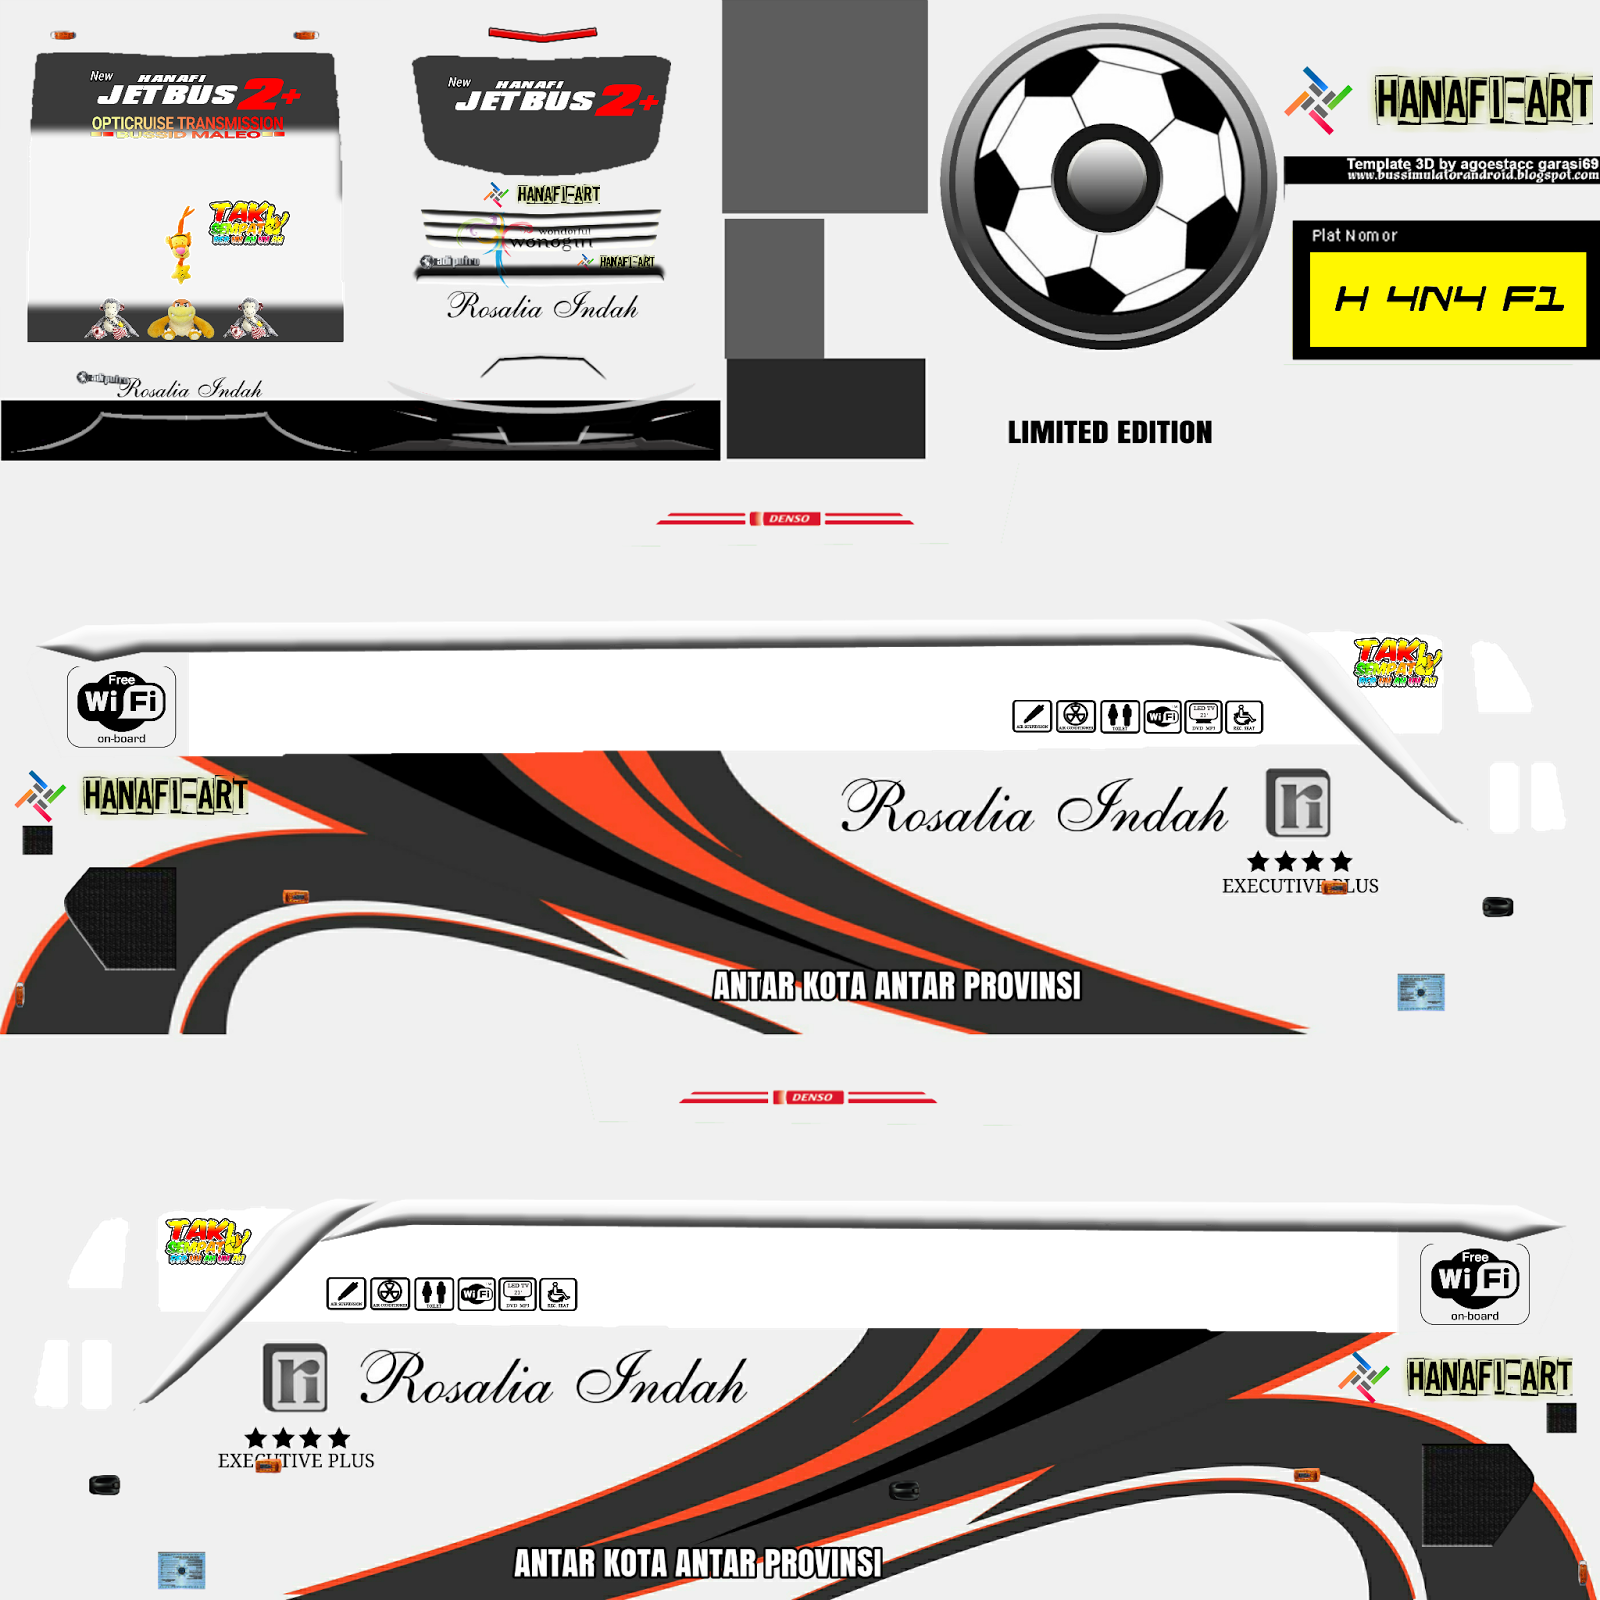 Selecting the correct version will make the kumpulan stiker bussid game work better, faster, use less battery power. livery bus rosalia indah png livery bus